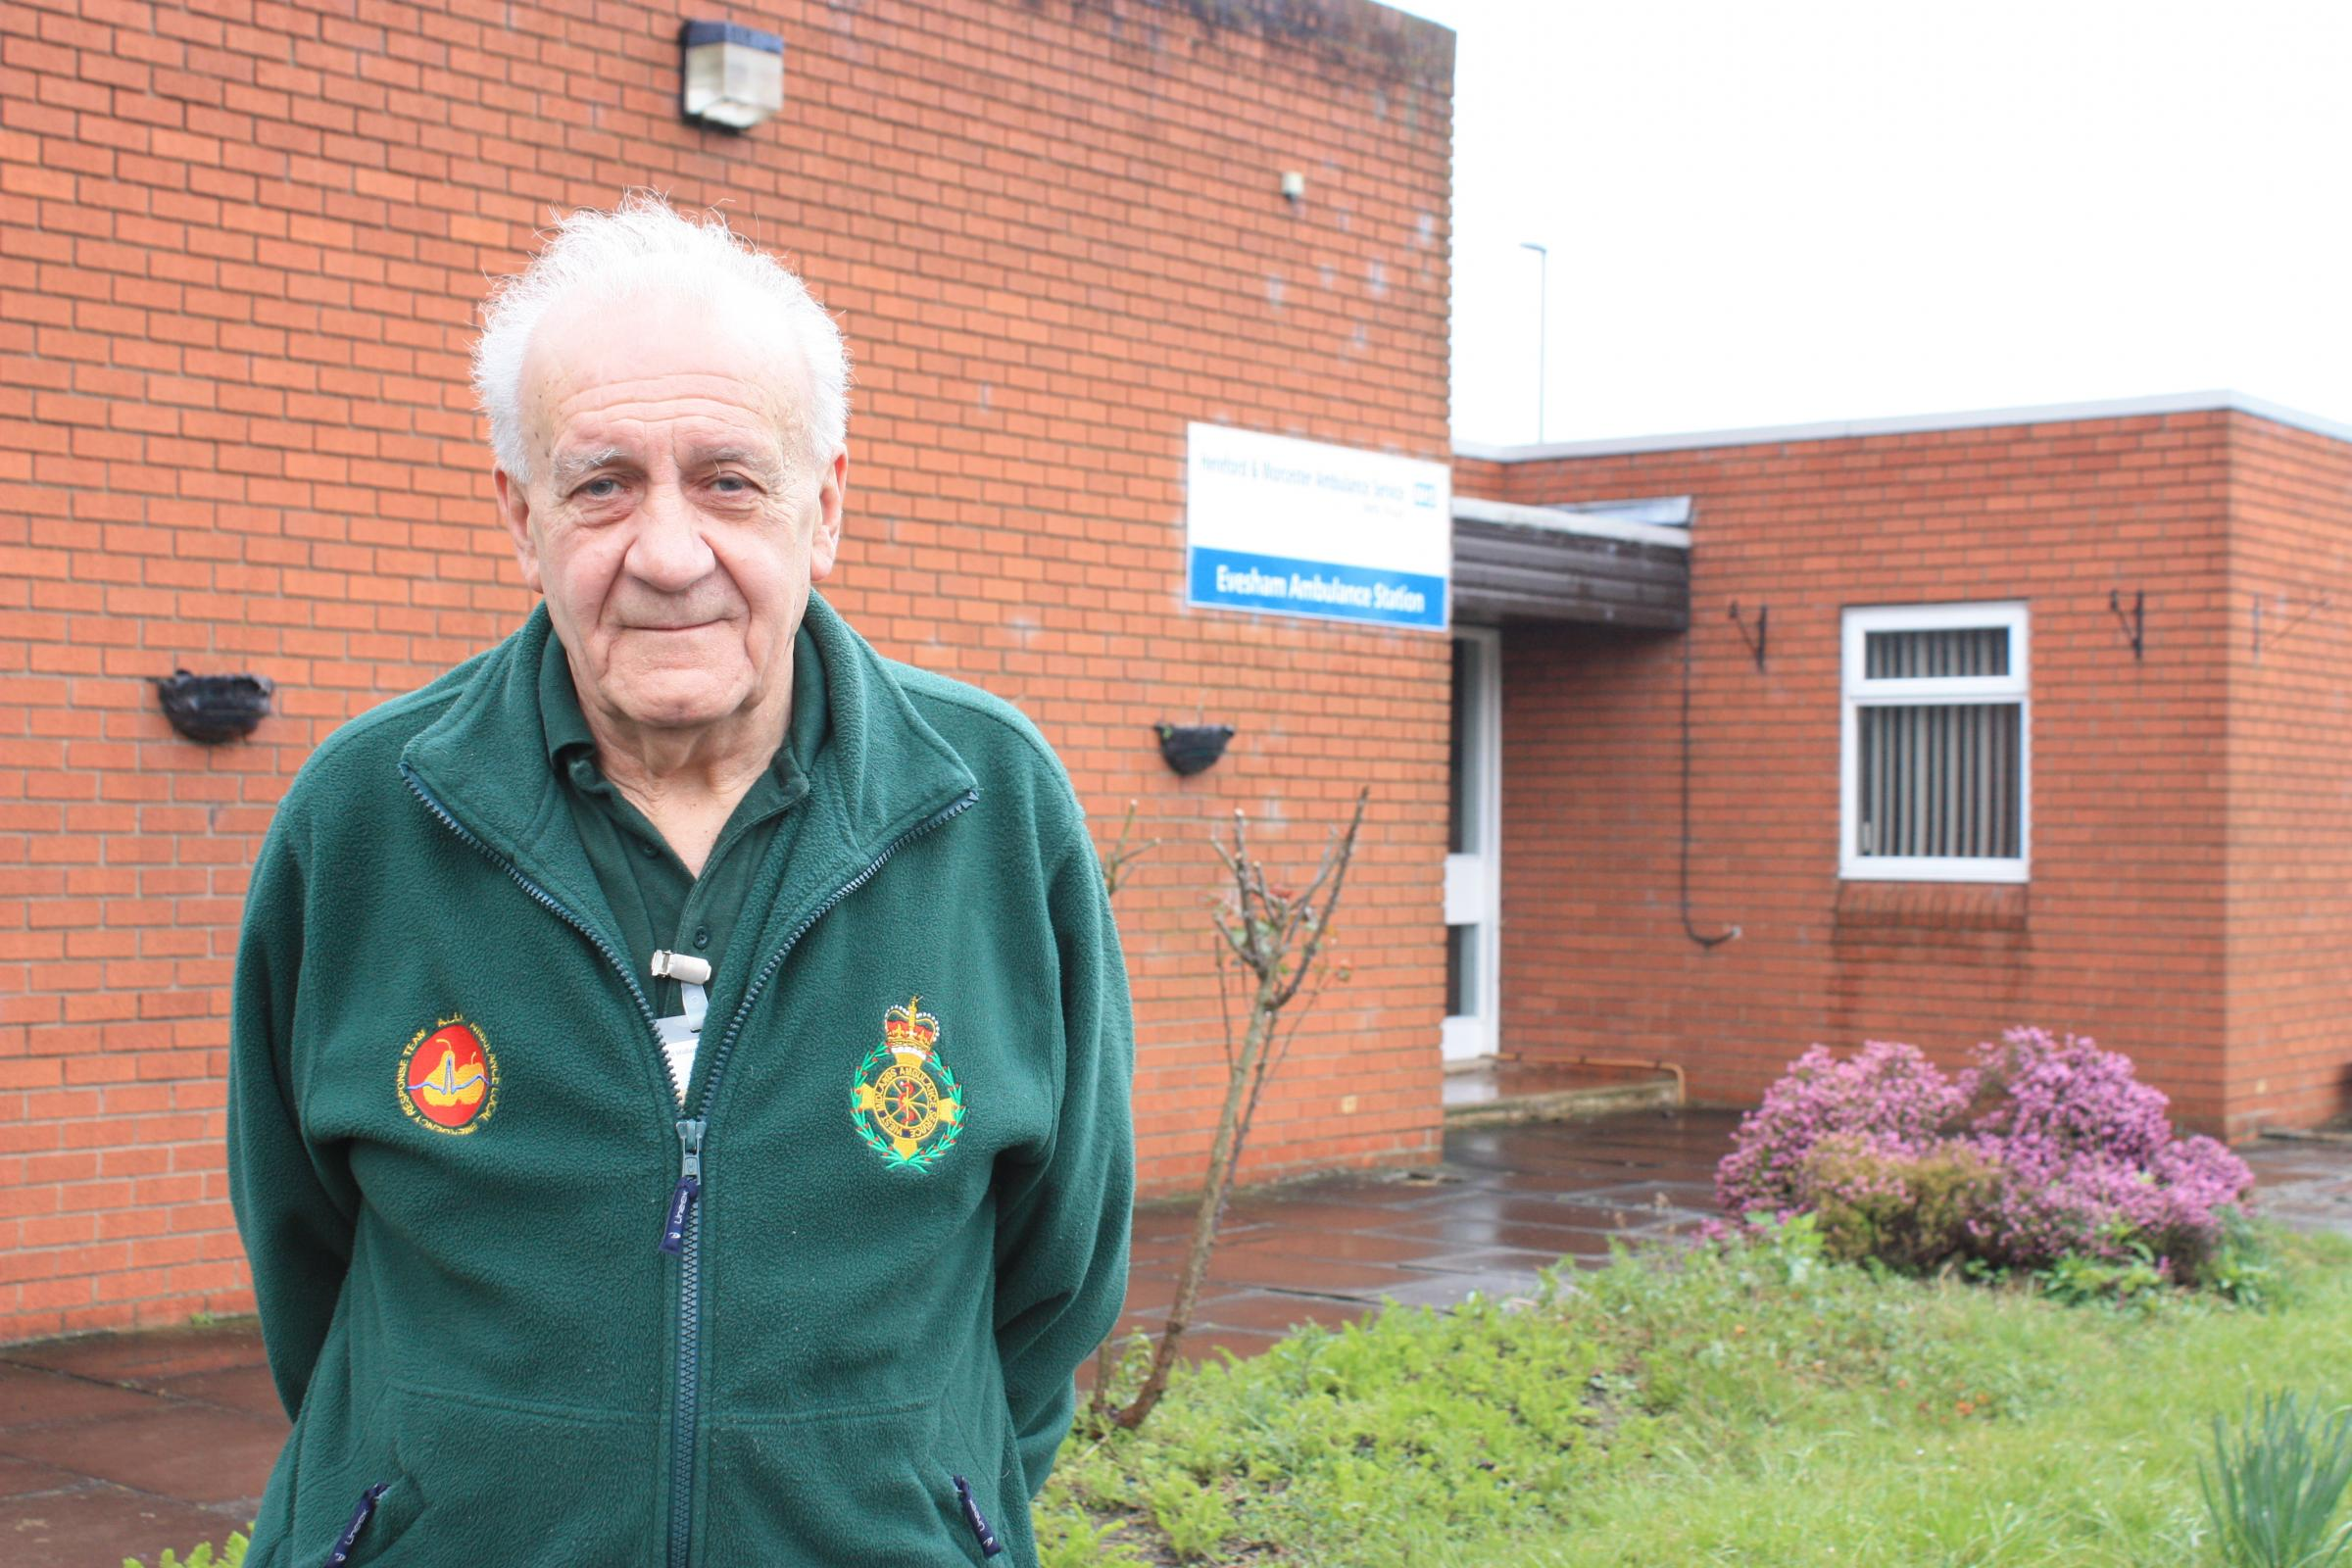 WHAT A HERO: Graham Wride who has been a community responder for the last seven years